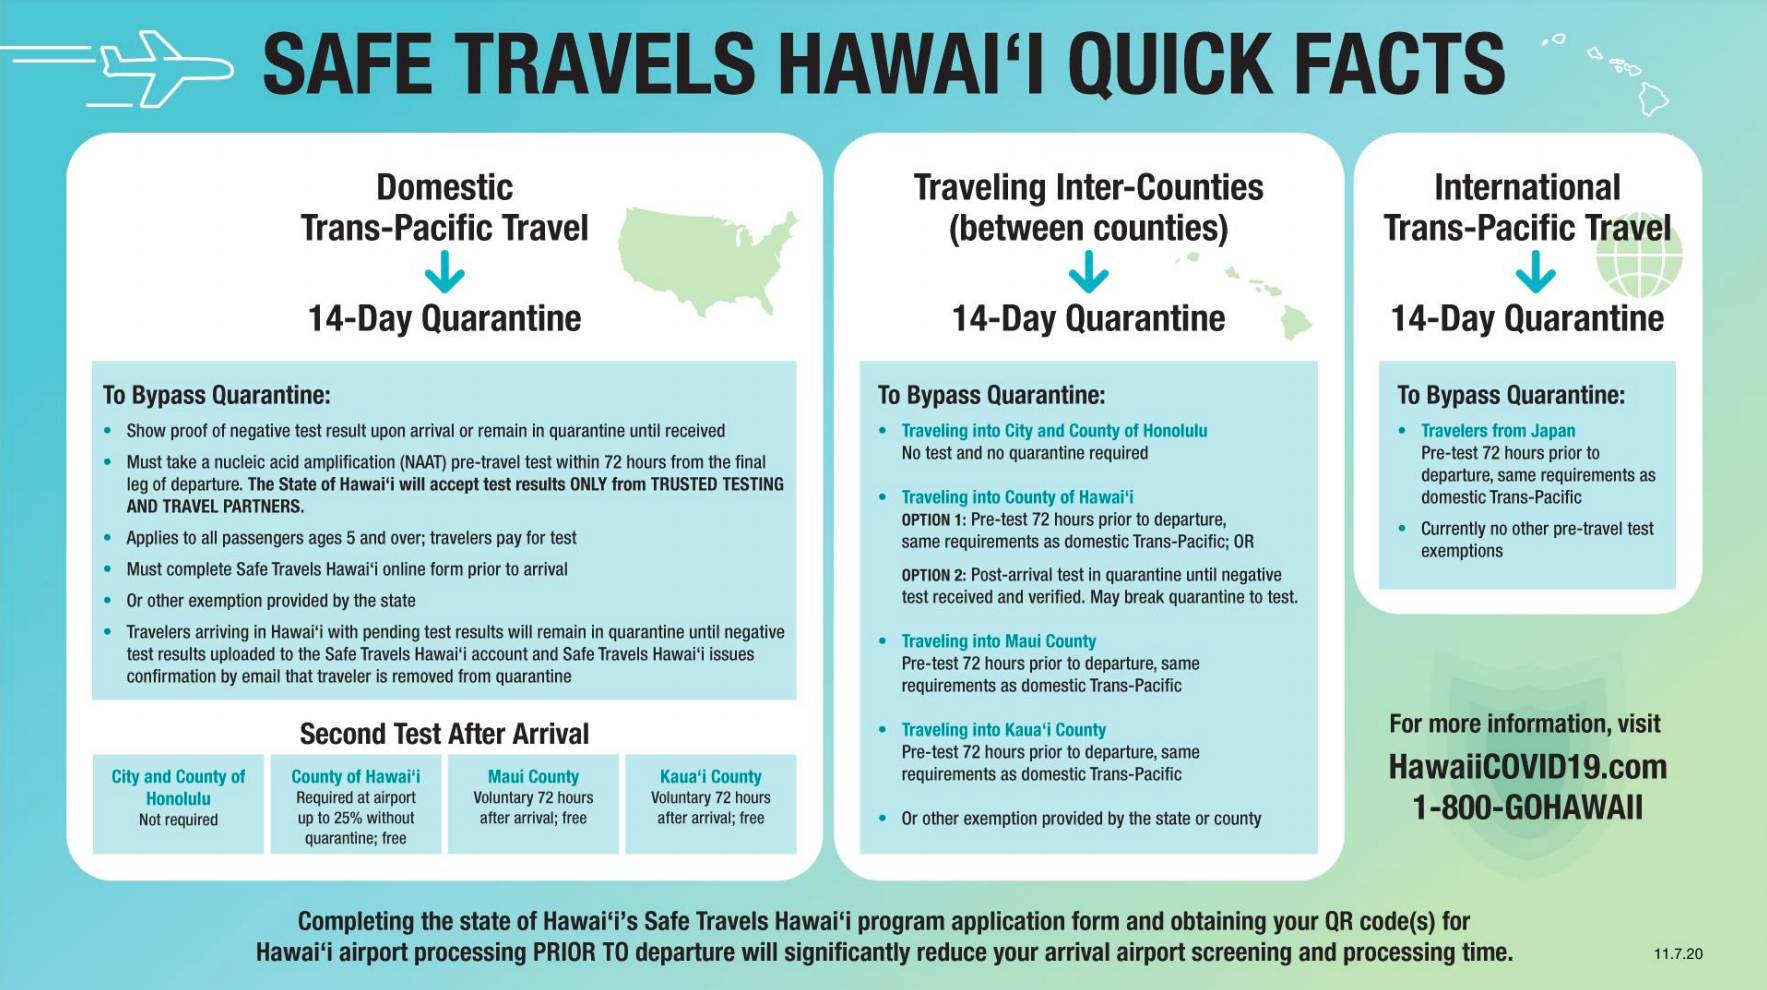 Safe Travels Hawaii Quick Facts - Nov 7 2020